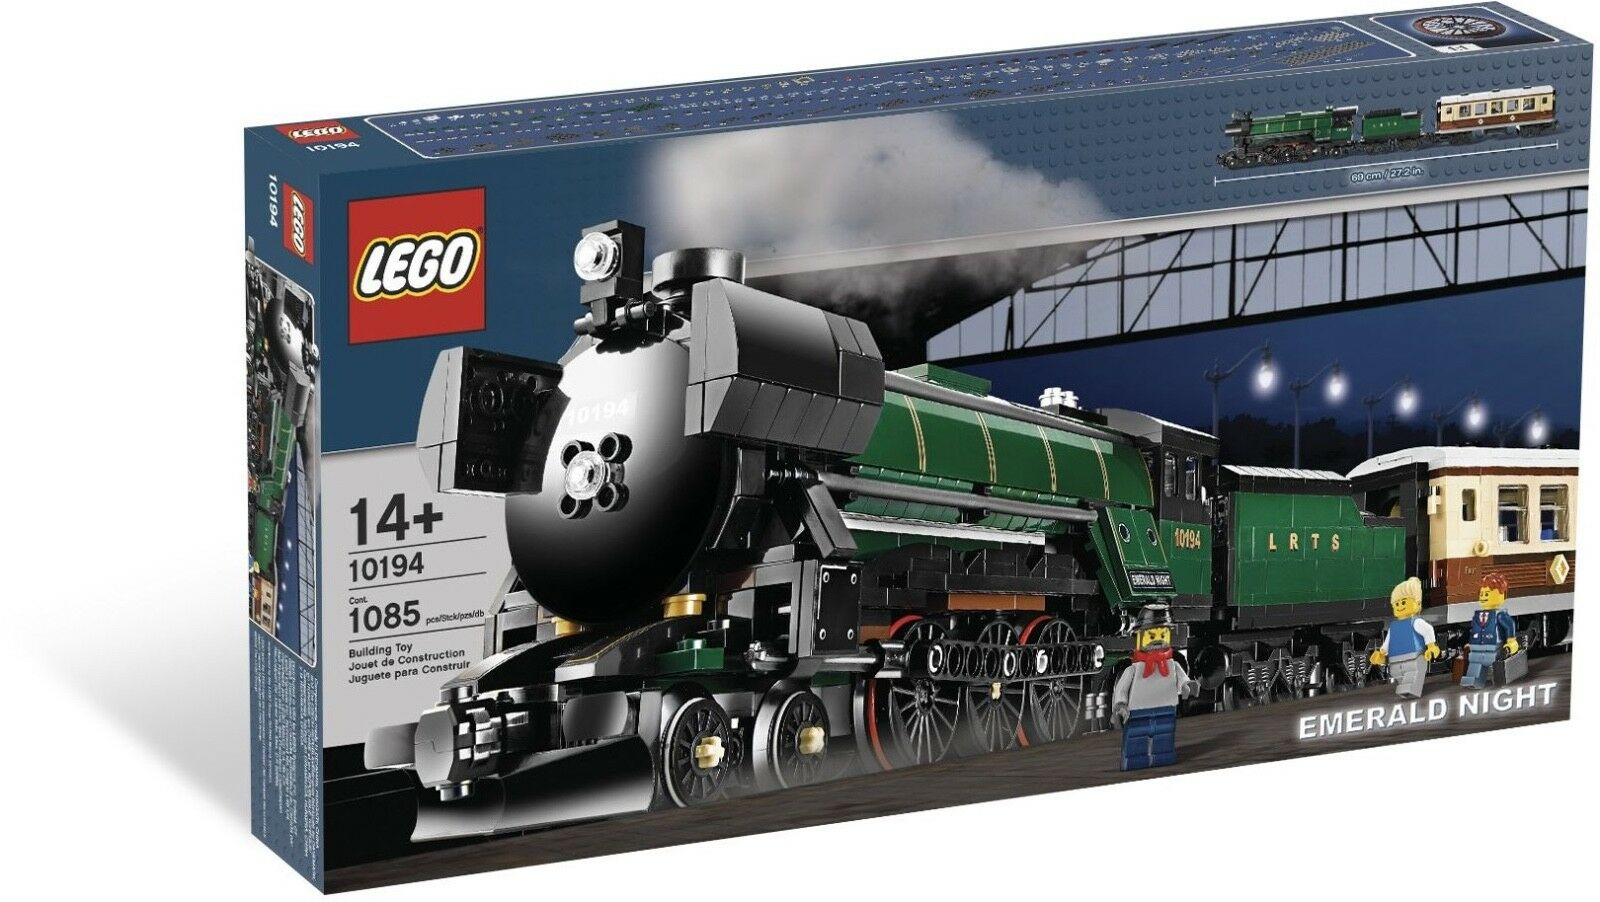 BRAND NEW LEGO Creator Emerald Night TRAIN TRAIN TRAIN 10194 2603f5